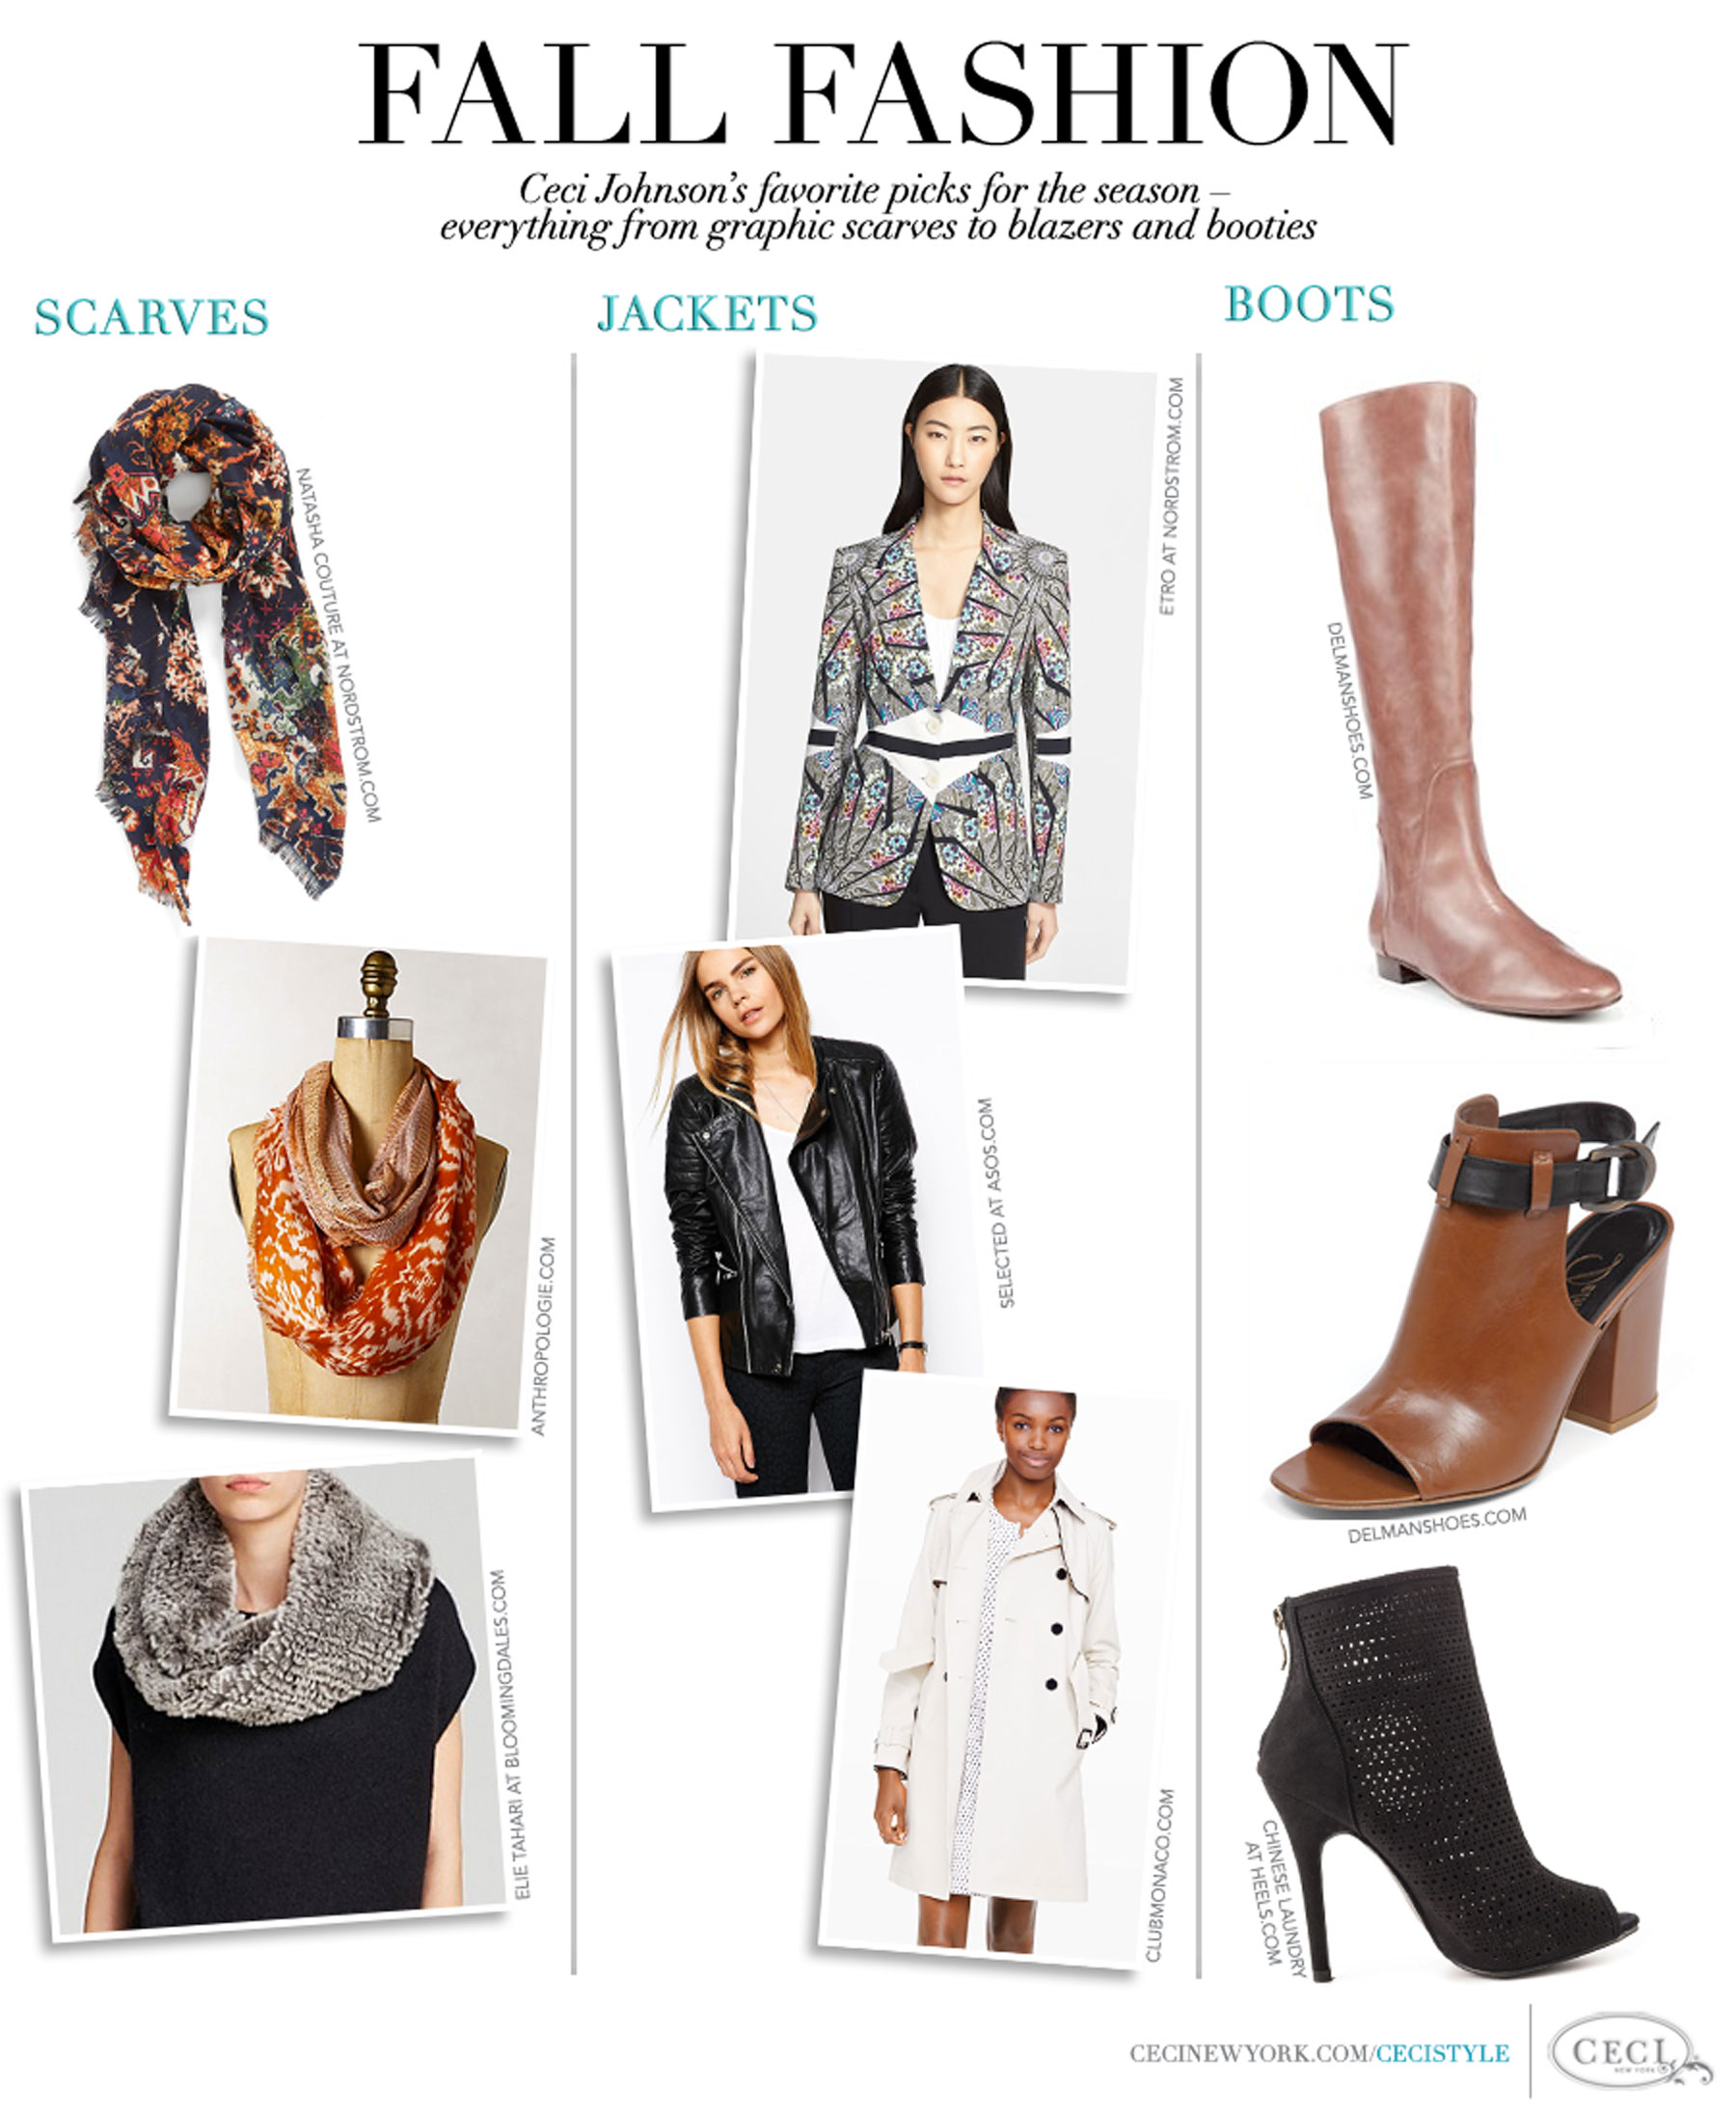 Fall Fashion - Ceci Johnson's favorite picks for the season - everything from graphic scarves to blazers and booties